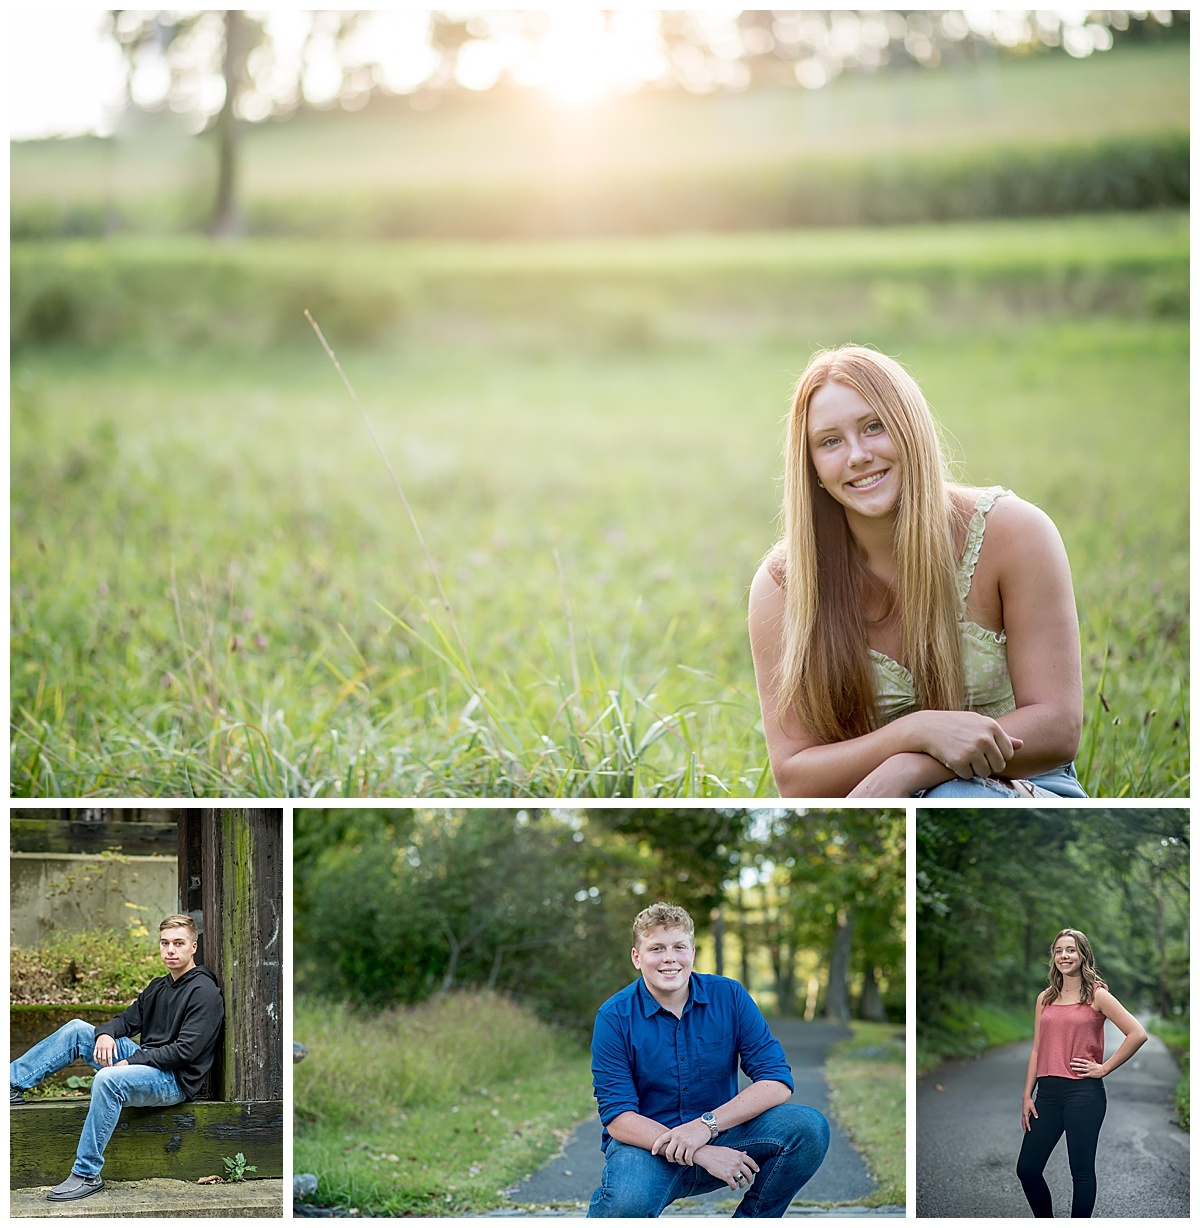 Silver Orchid Photography, Silver Orchid Portraits, Senior Portraits, Senior Session, Outdoor Session